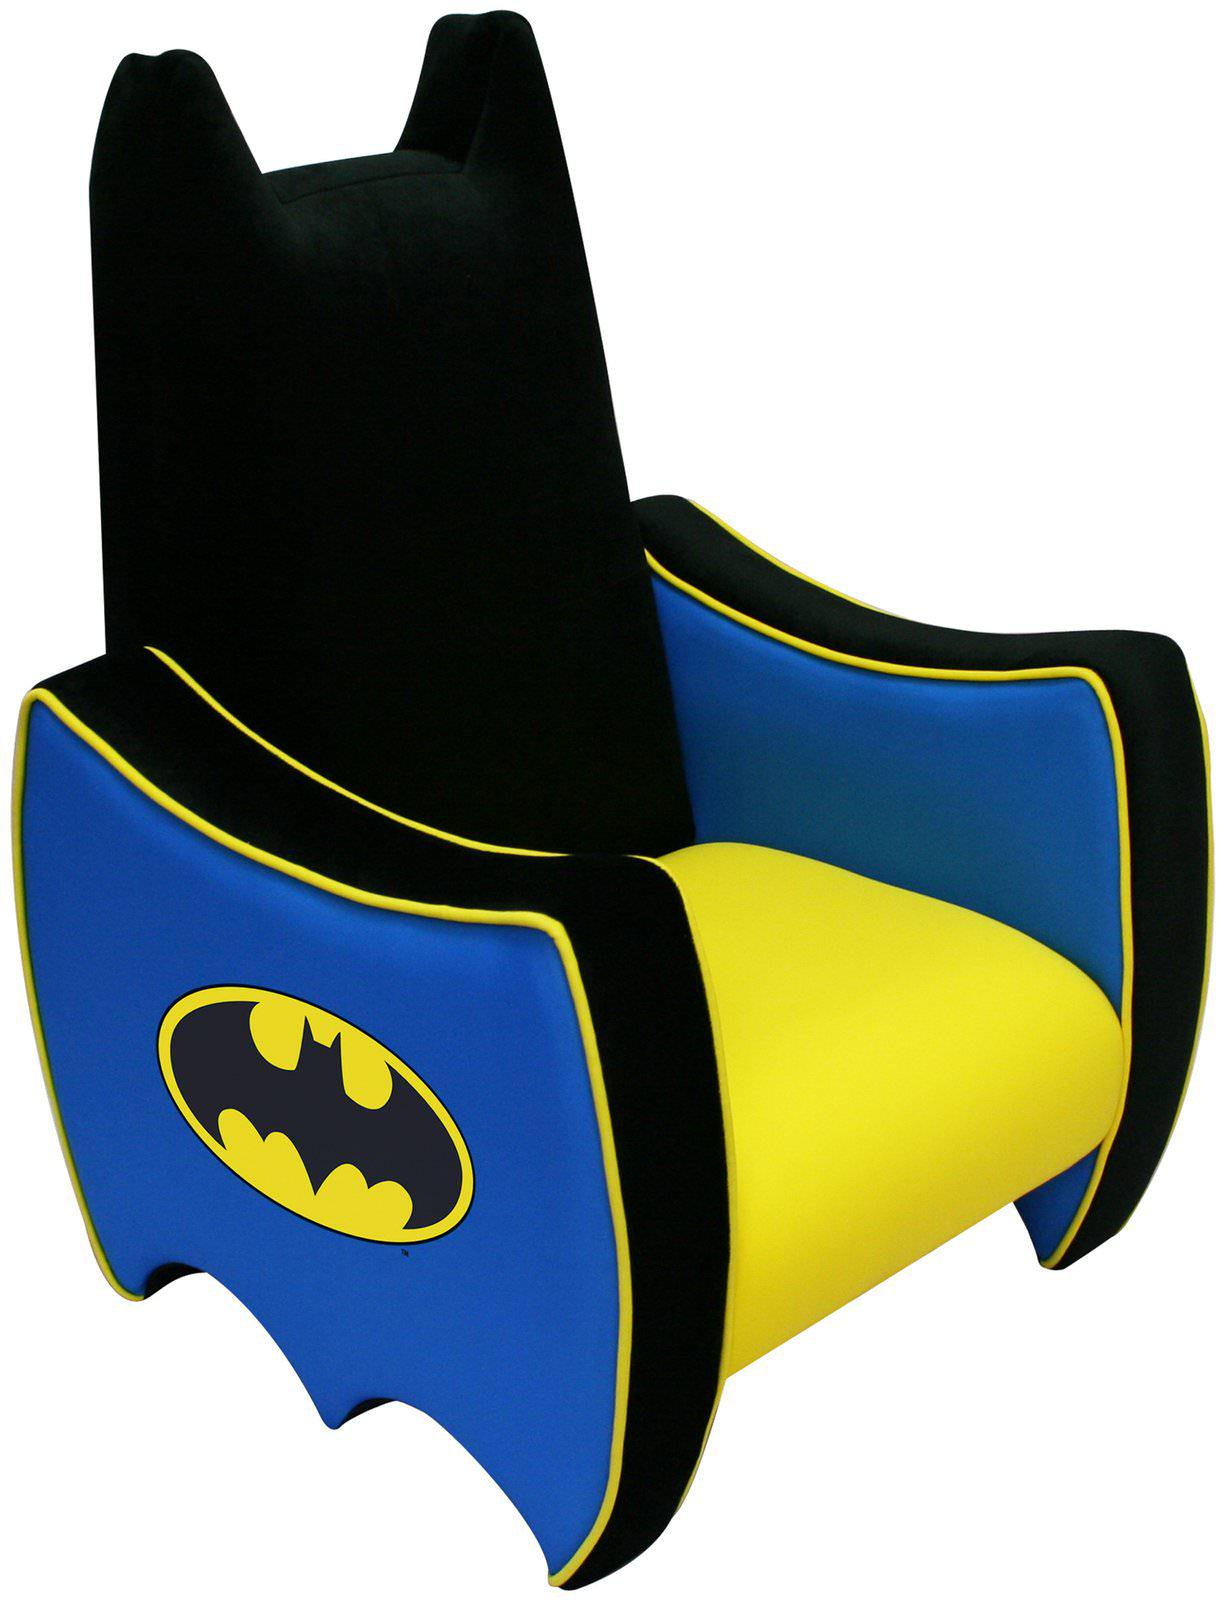 Relaxing Chair Best Stylish Batman Sheets (Image 5 of 10)